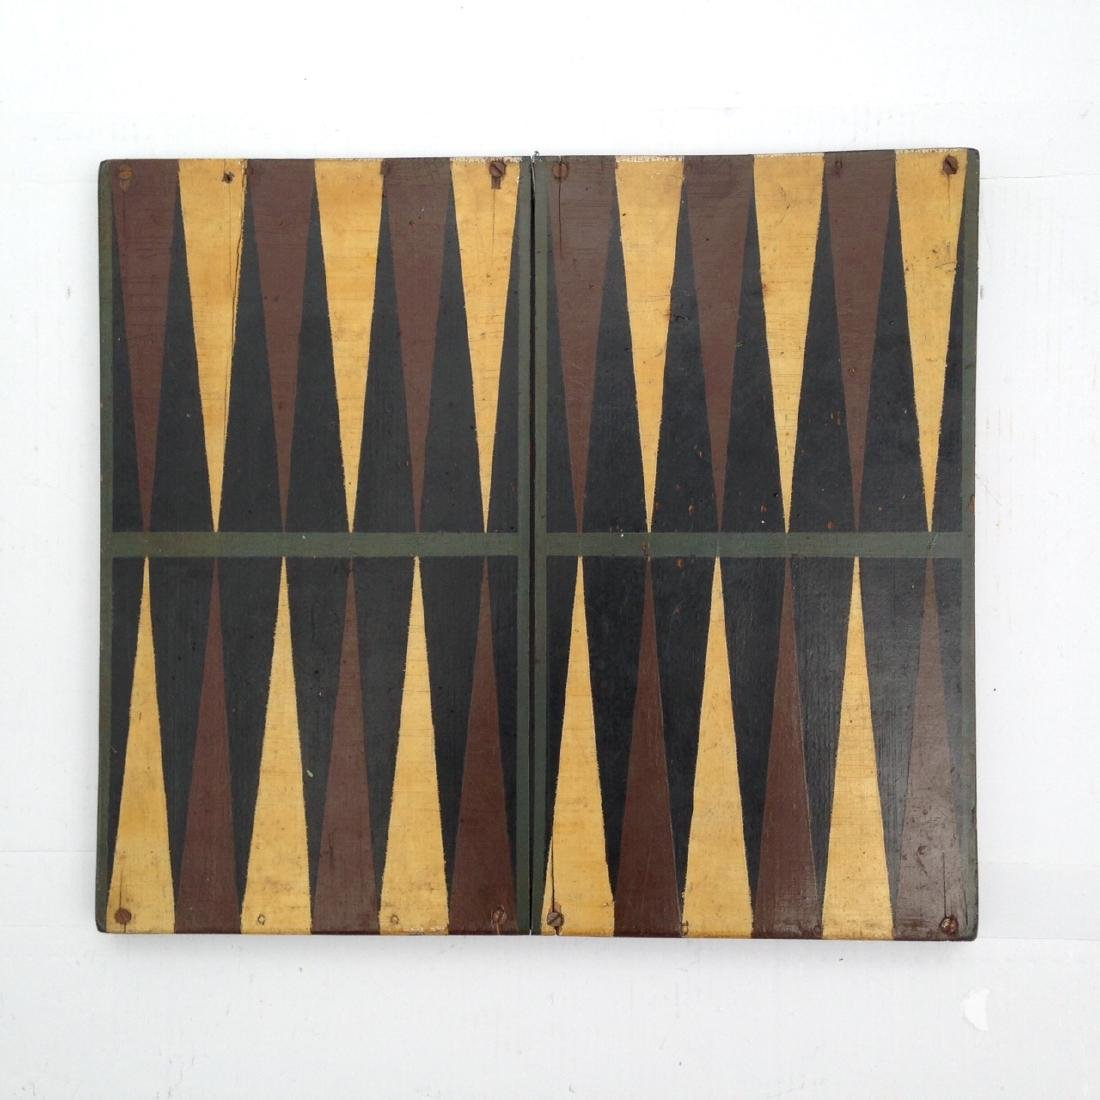 Late 19th Century All Original 4 Color Pine Gameboard